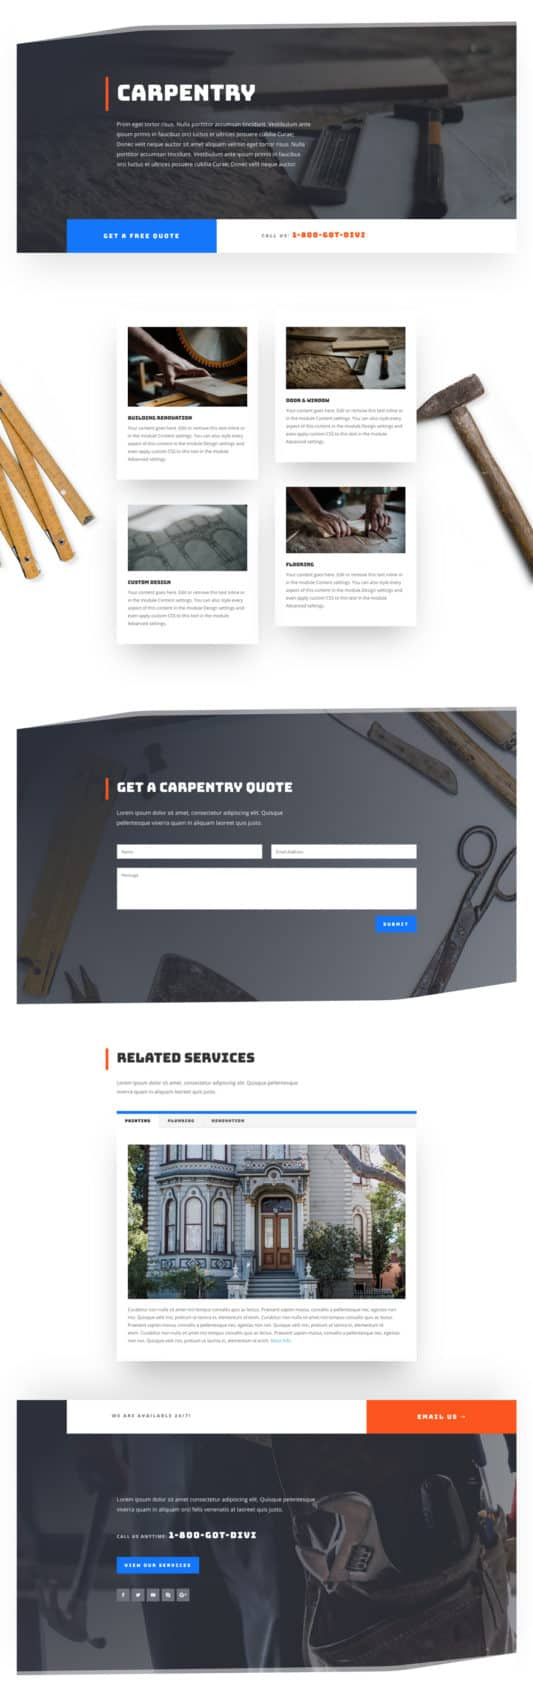 Handyman Web Design 6